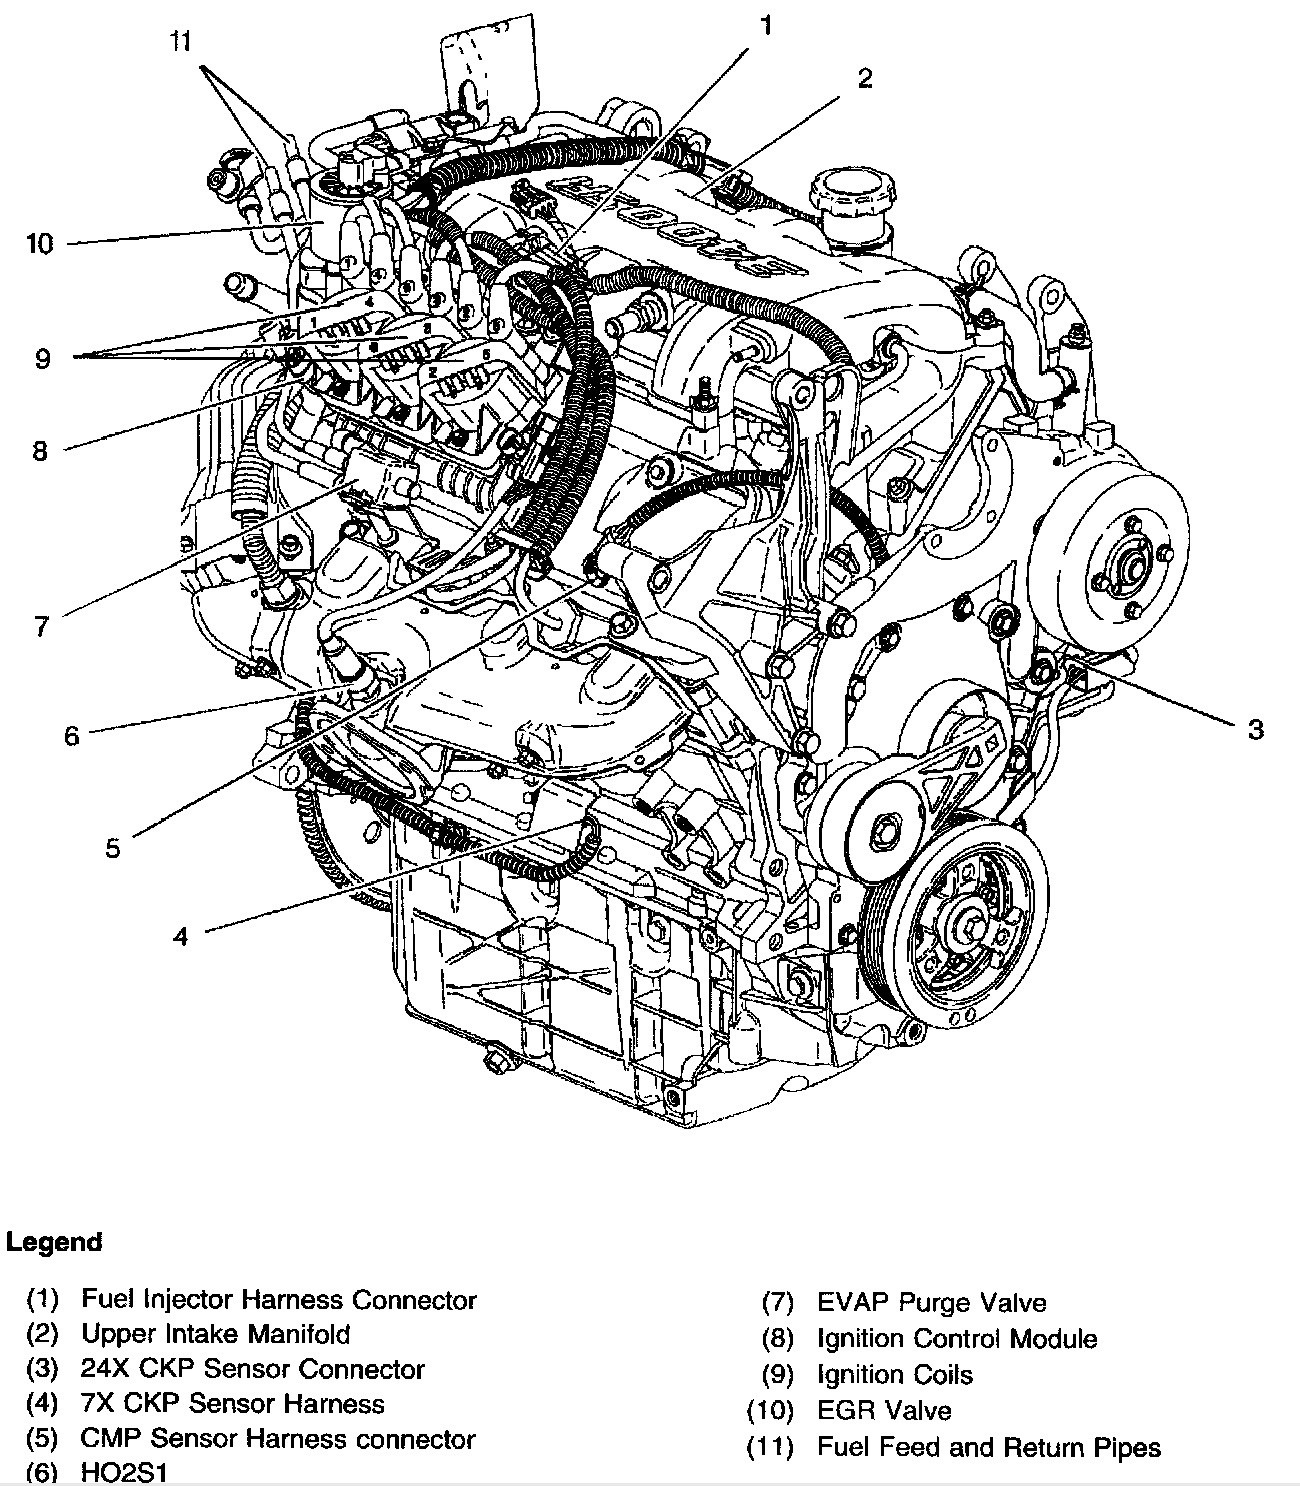 2002 Pontiac 3800 Series 2 Engine Diagram